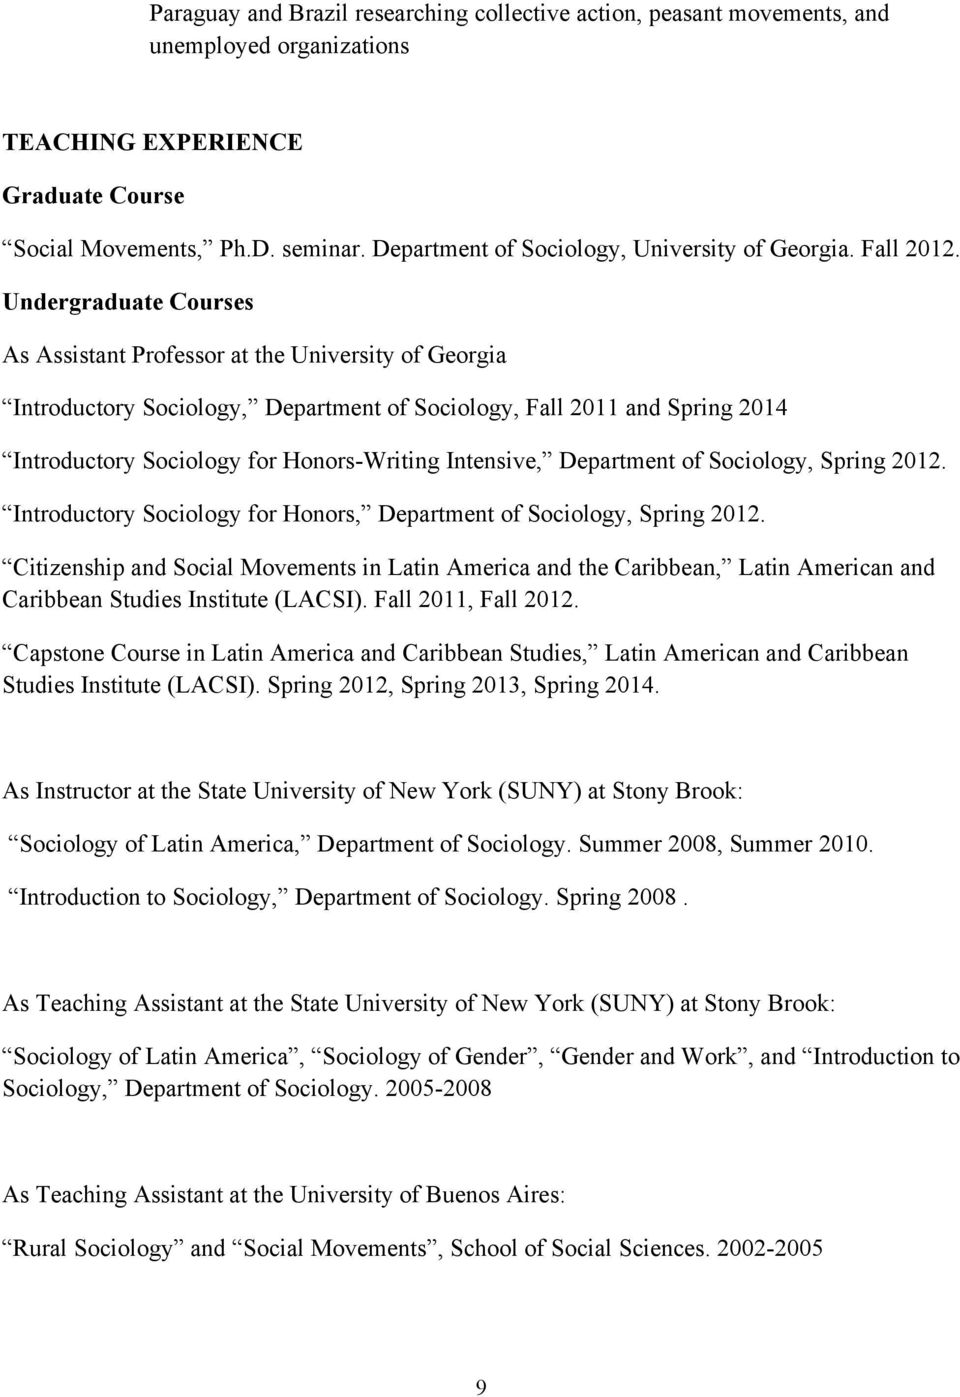 Undergraduate Courses As Assistant Professor at the University of Georgia Introductory Sociology, Department of Sociology, Fall 2011 and Spring 2014 Introductory Sociology for Honors-Writing